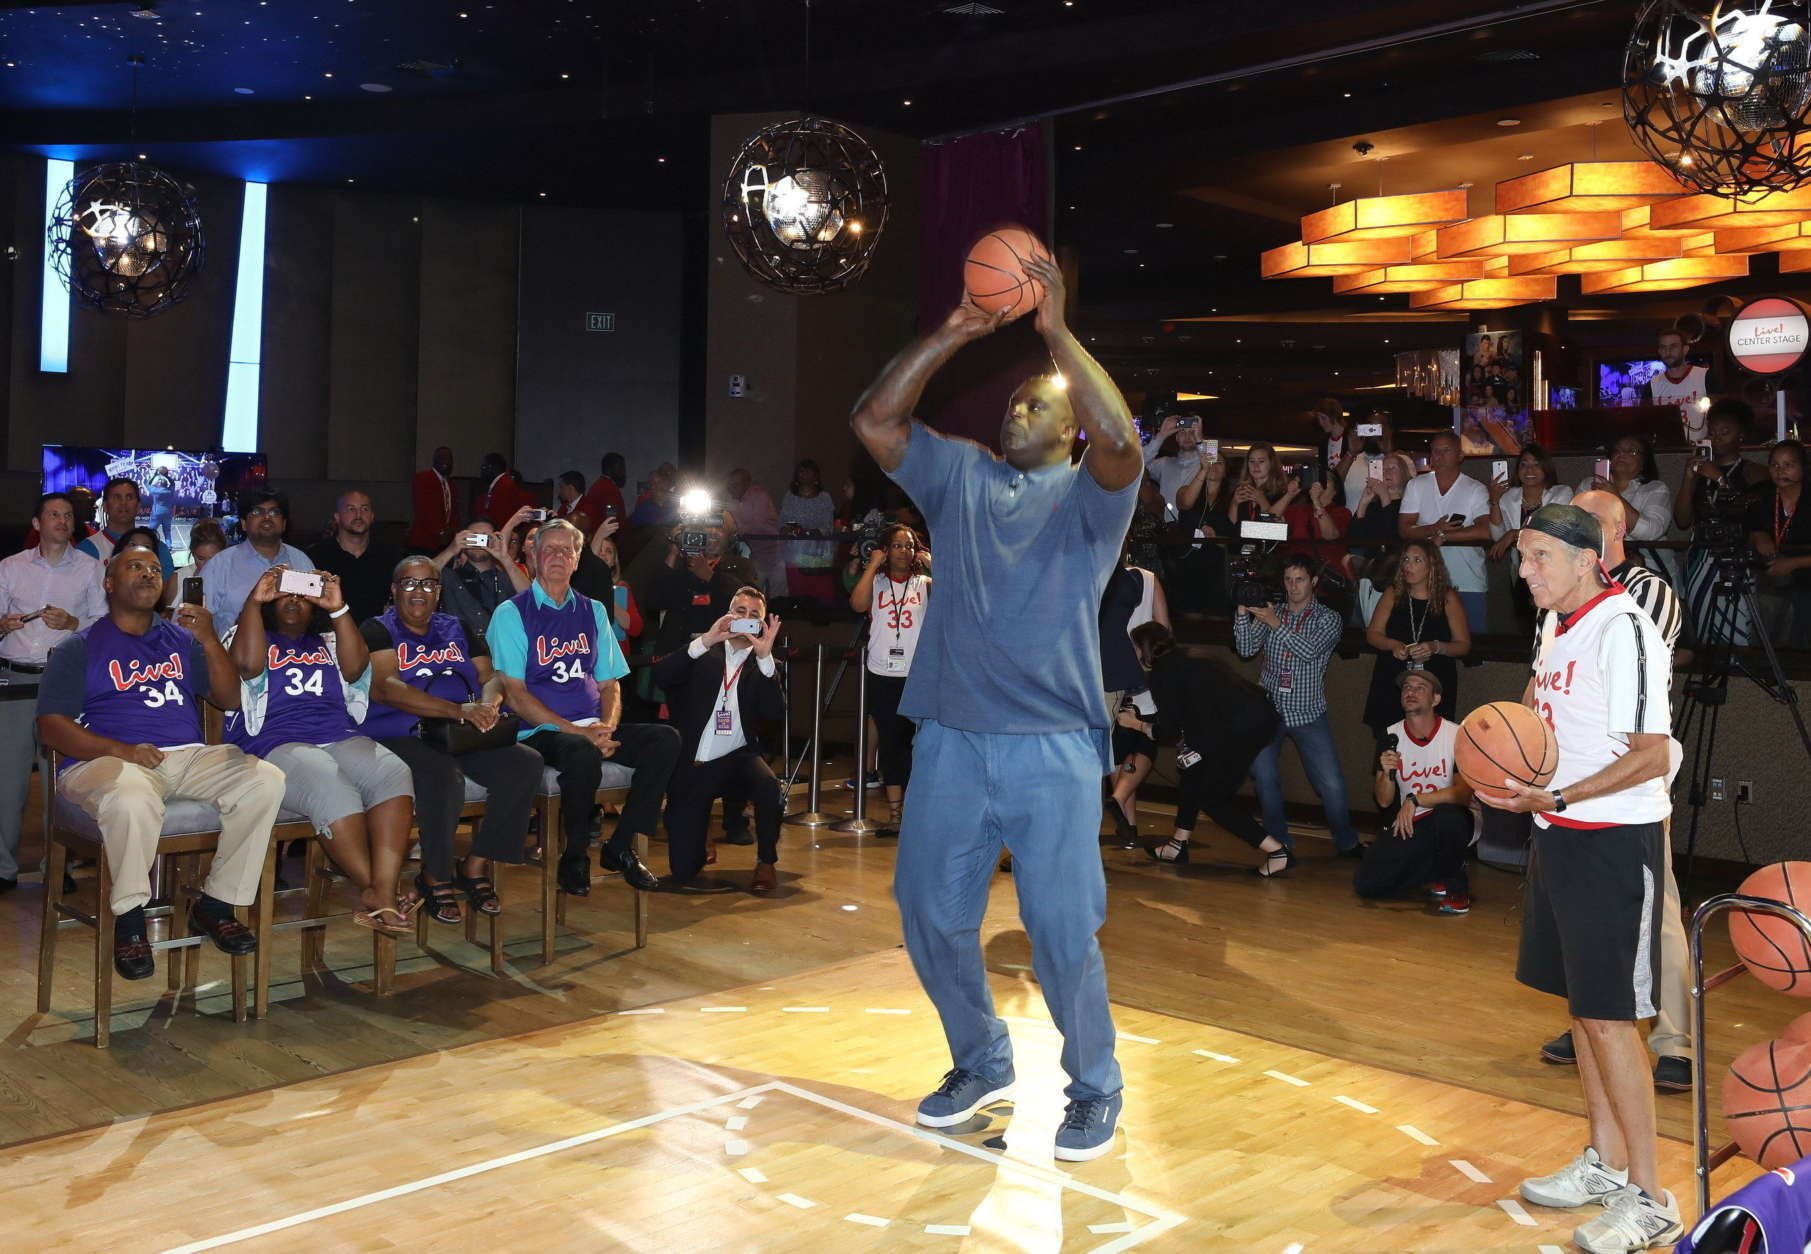 """In a real-life """"David vs Goliath"""" battle at Live! Casino & Hotel, NBA Hall of Famer and 4-time NBA Champion Shaquille O'Neal took on David Cordish, Chairman of The Cordish Companies, in a head to head free-throw competition. The Megastar vs Mogul fight ended in a tie, when both made their sudden death shots after draining three of six throws. (PRNewsfoto/Live! Casino and Hotel)"""